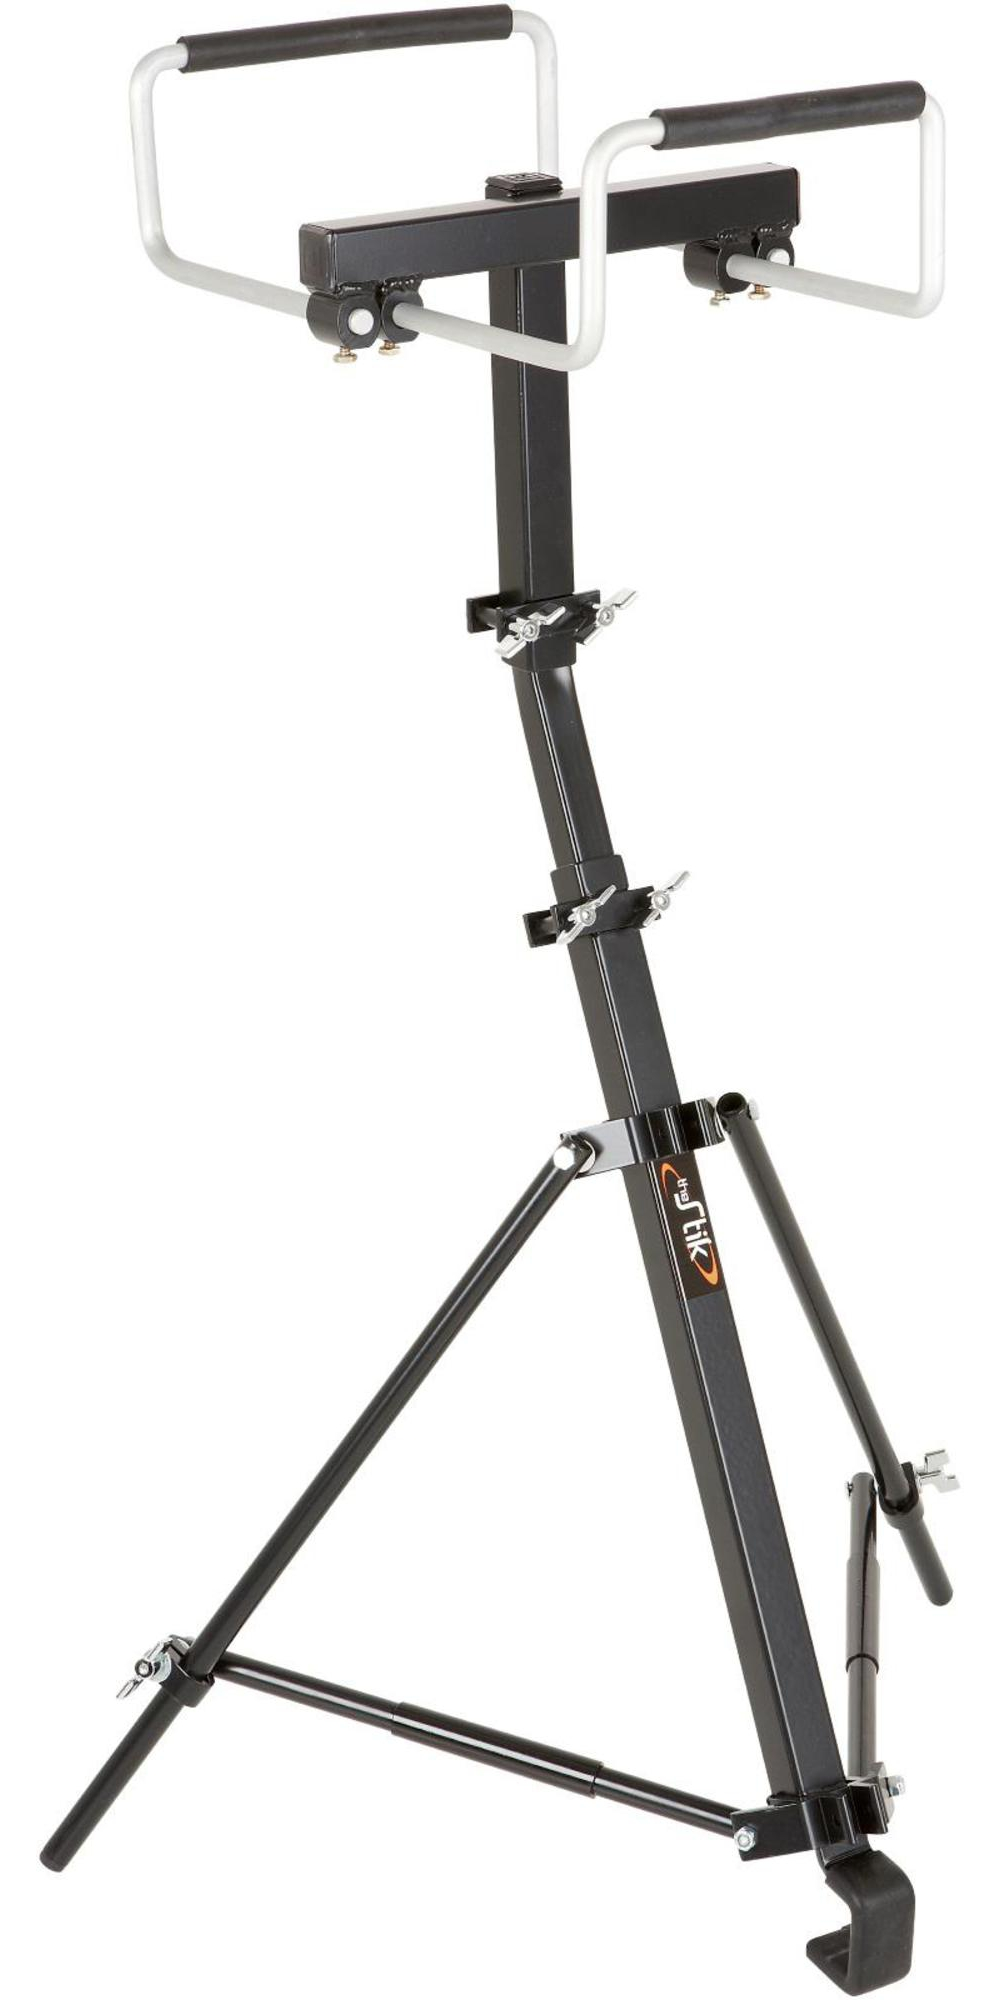 XL Specialty Percussion STK-BD1 The Stik Bass Drum Field Stand by XL Specialty Percussion